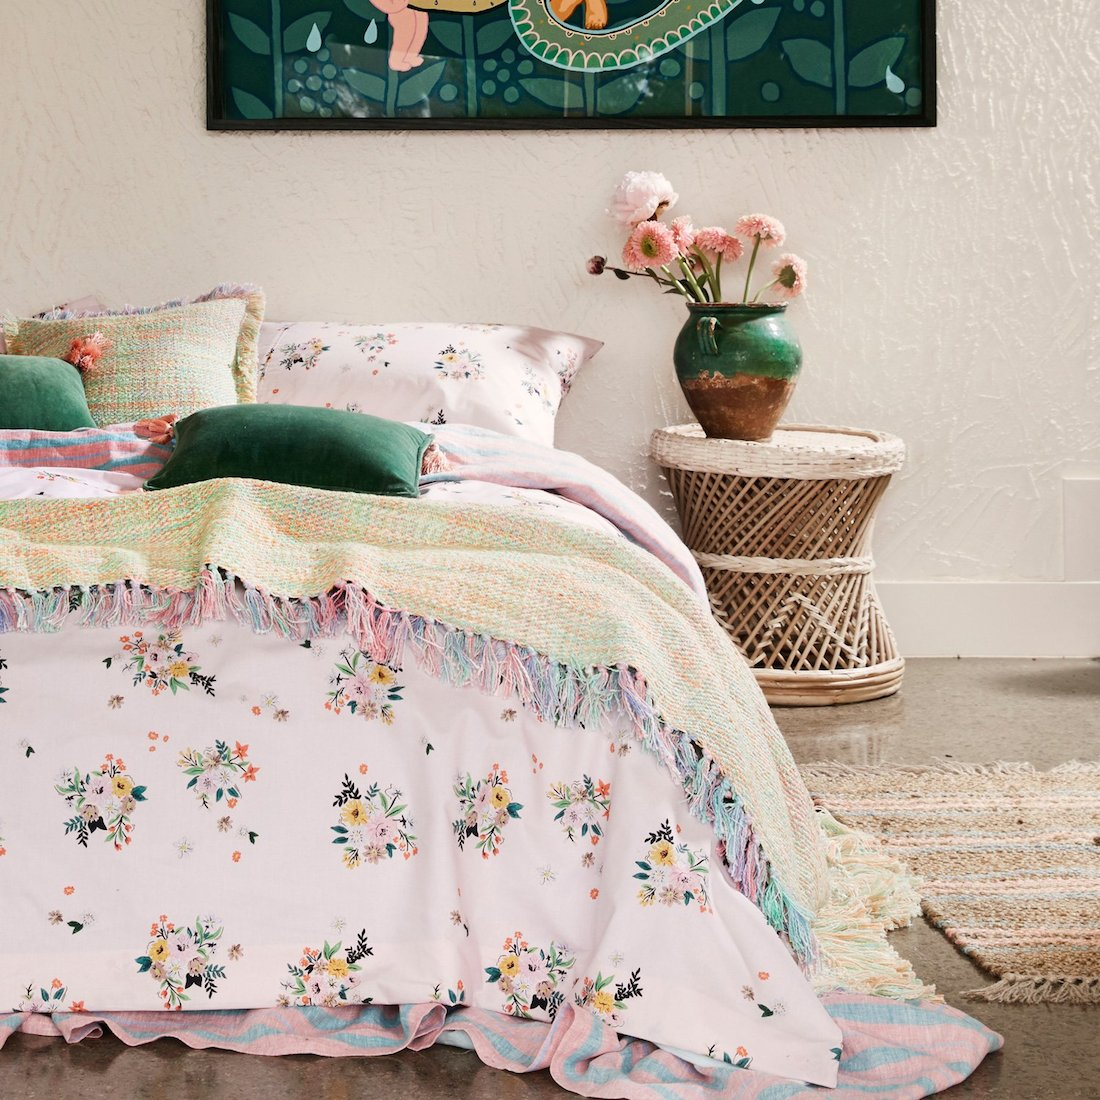 Colourful bedding from Kip and Co